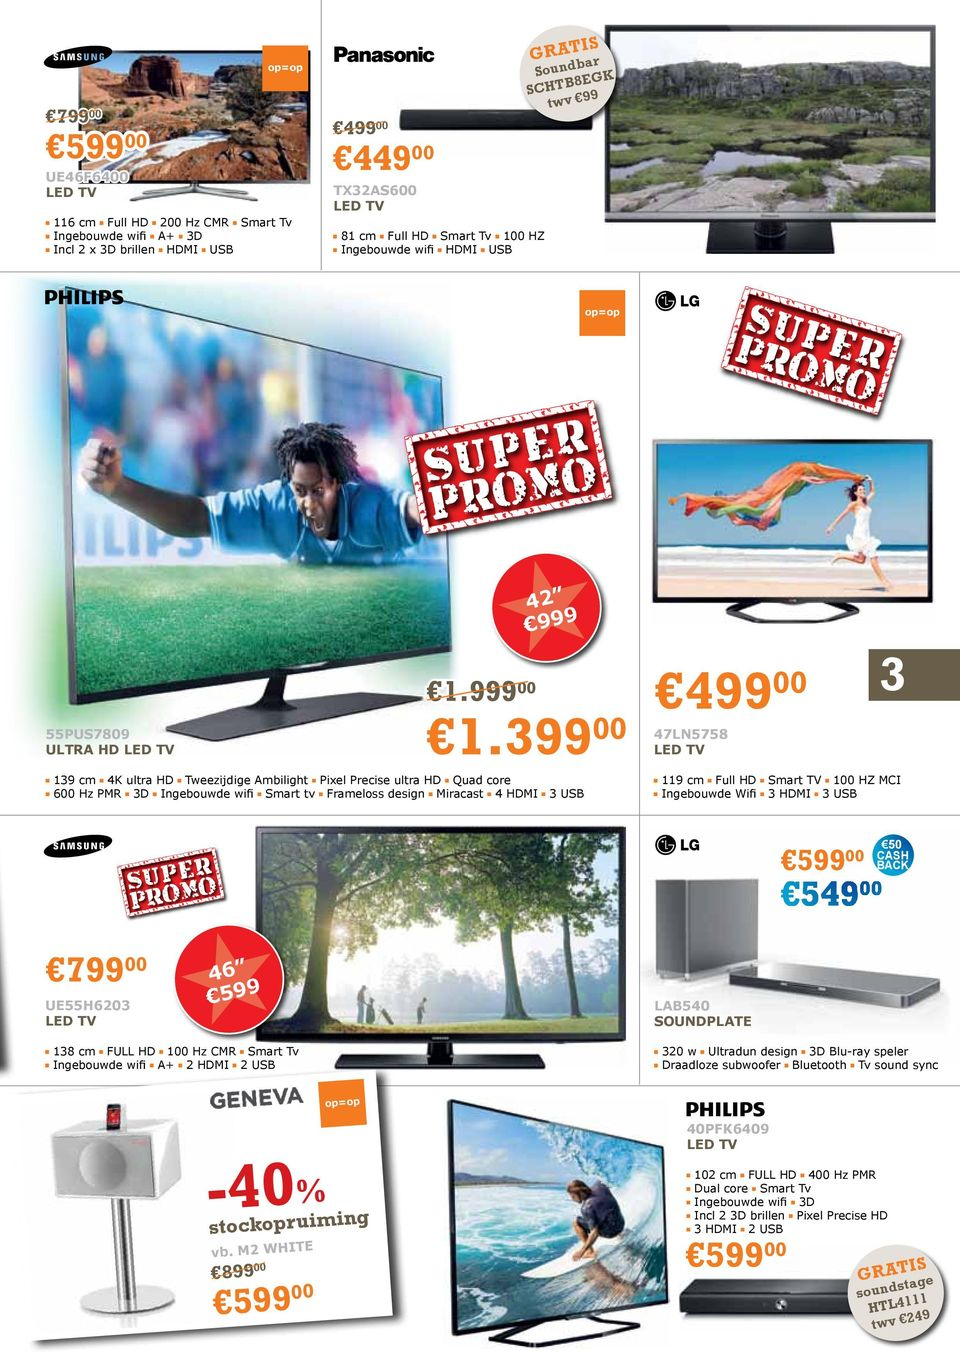 399 00 139 cm 4K ultra HD Tweezijdige Ambilight Pixel Precise ultra HD Quad core 600 Hz PMR 3D Ingebouwde wifi Smart tv Frameloss design Miracast 4 HDMI 3 USB 47LN5758 3 119 cm Full HD Smart TV 100